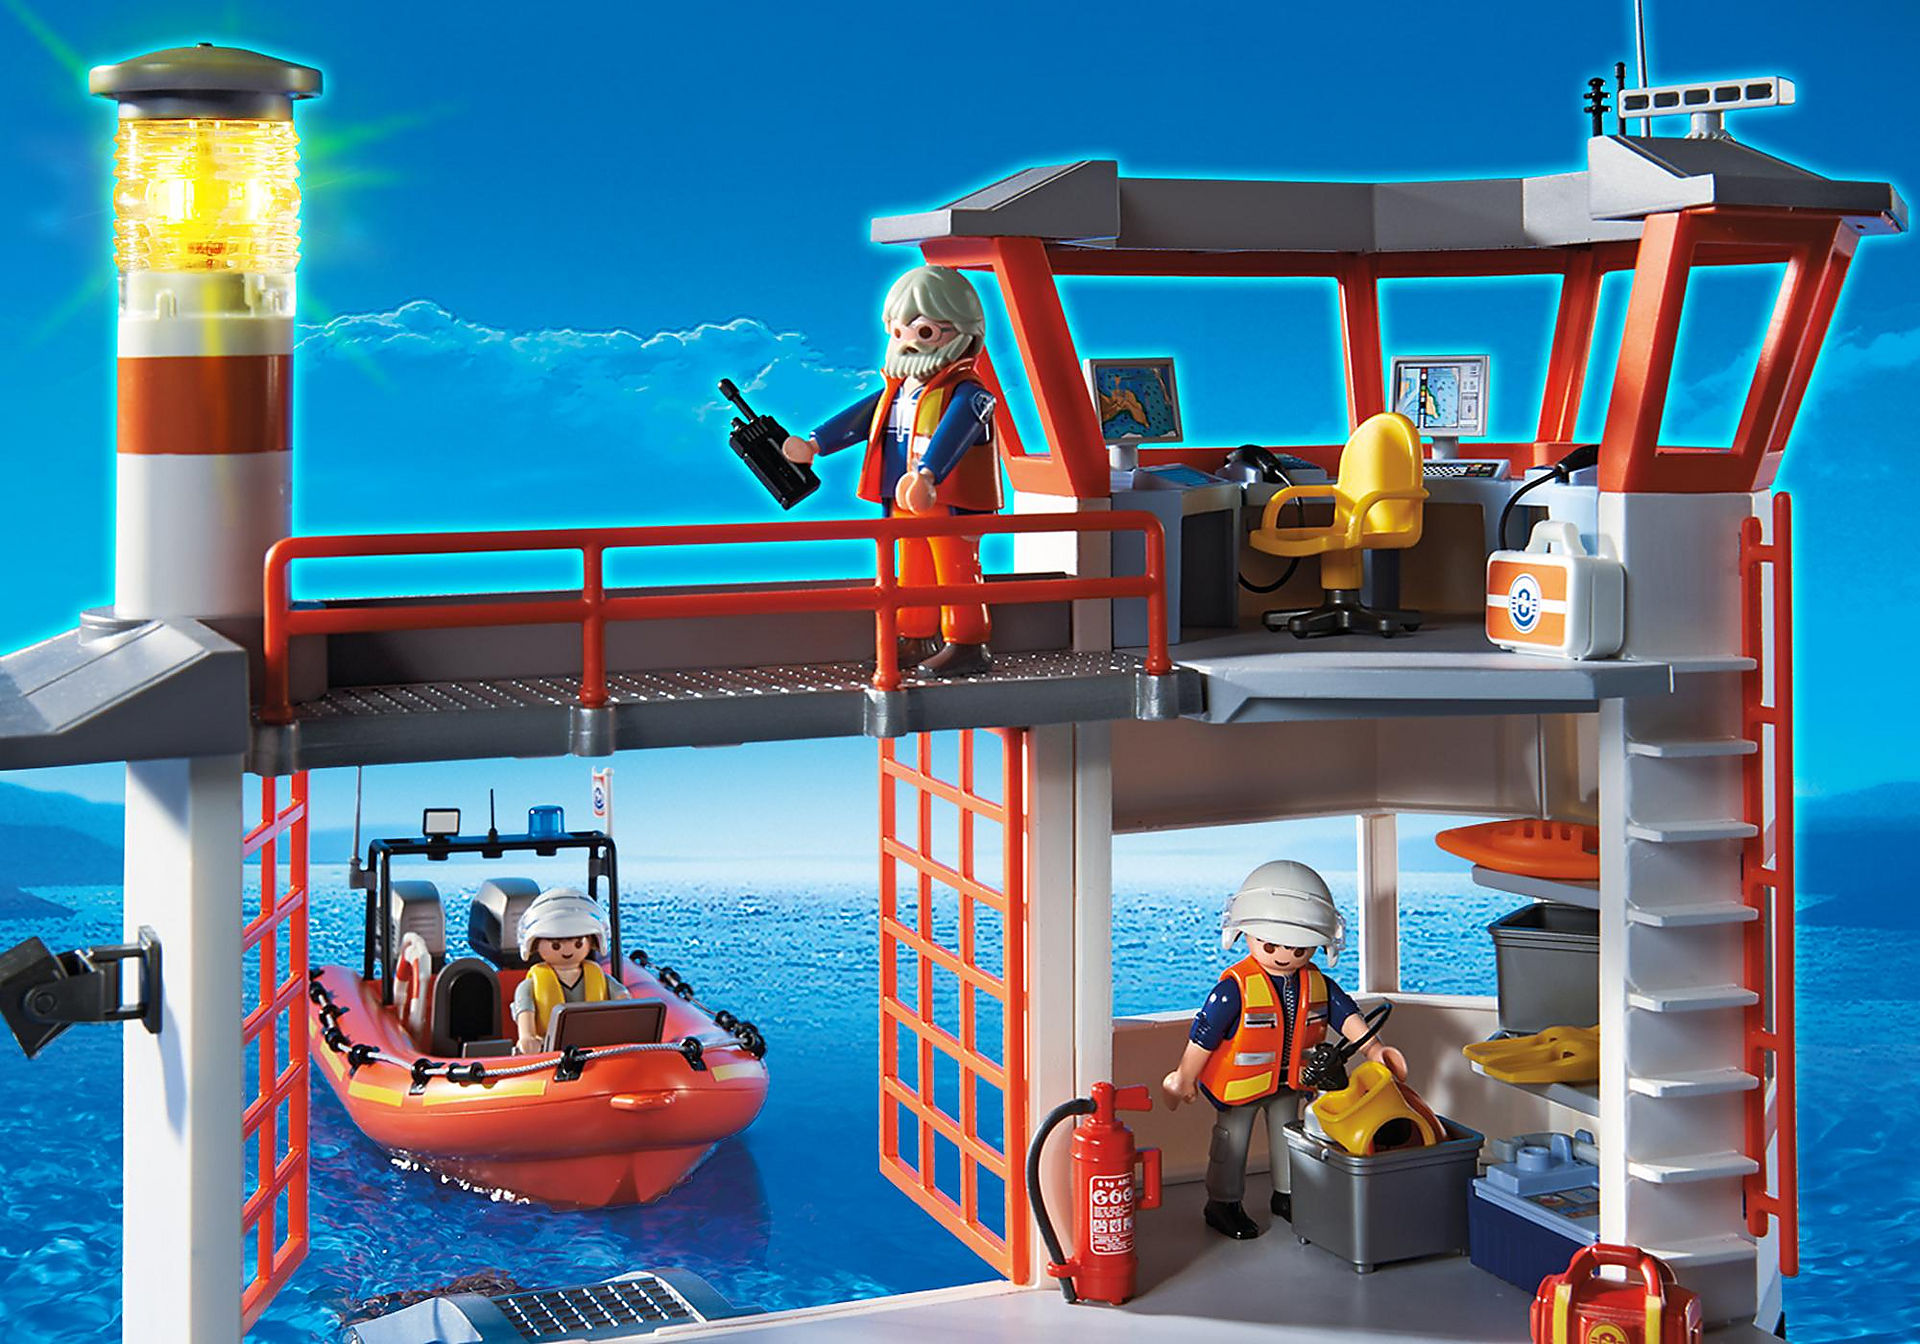 http://media.playmobil.com/i/playmobil/5539_product_extra3/Πλωτή βάση ακτ/κής με φάρο